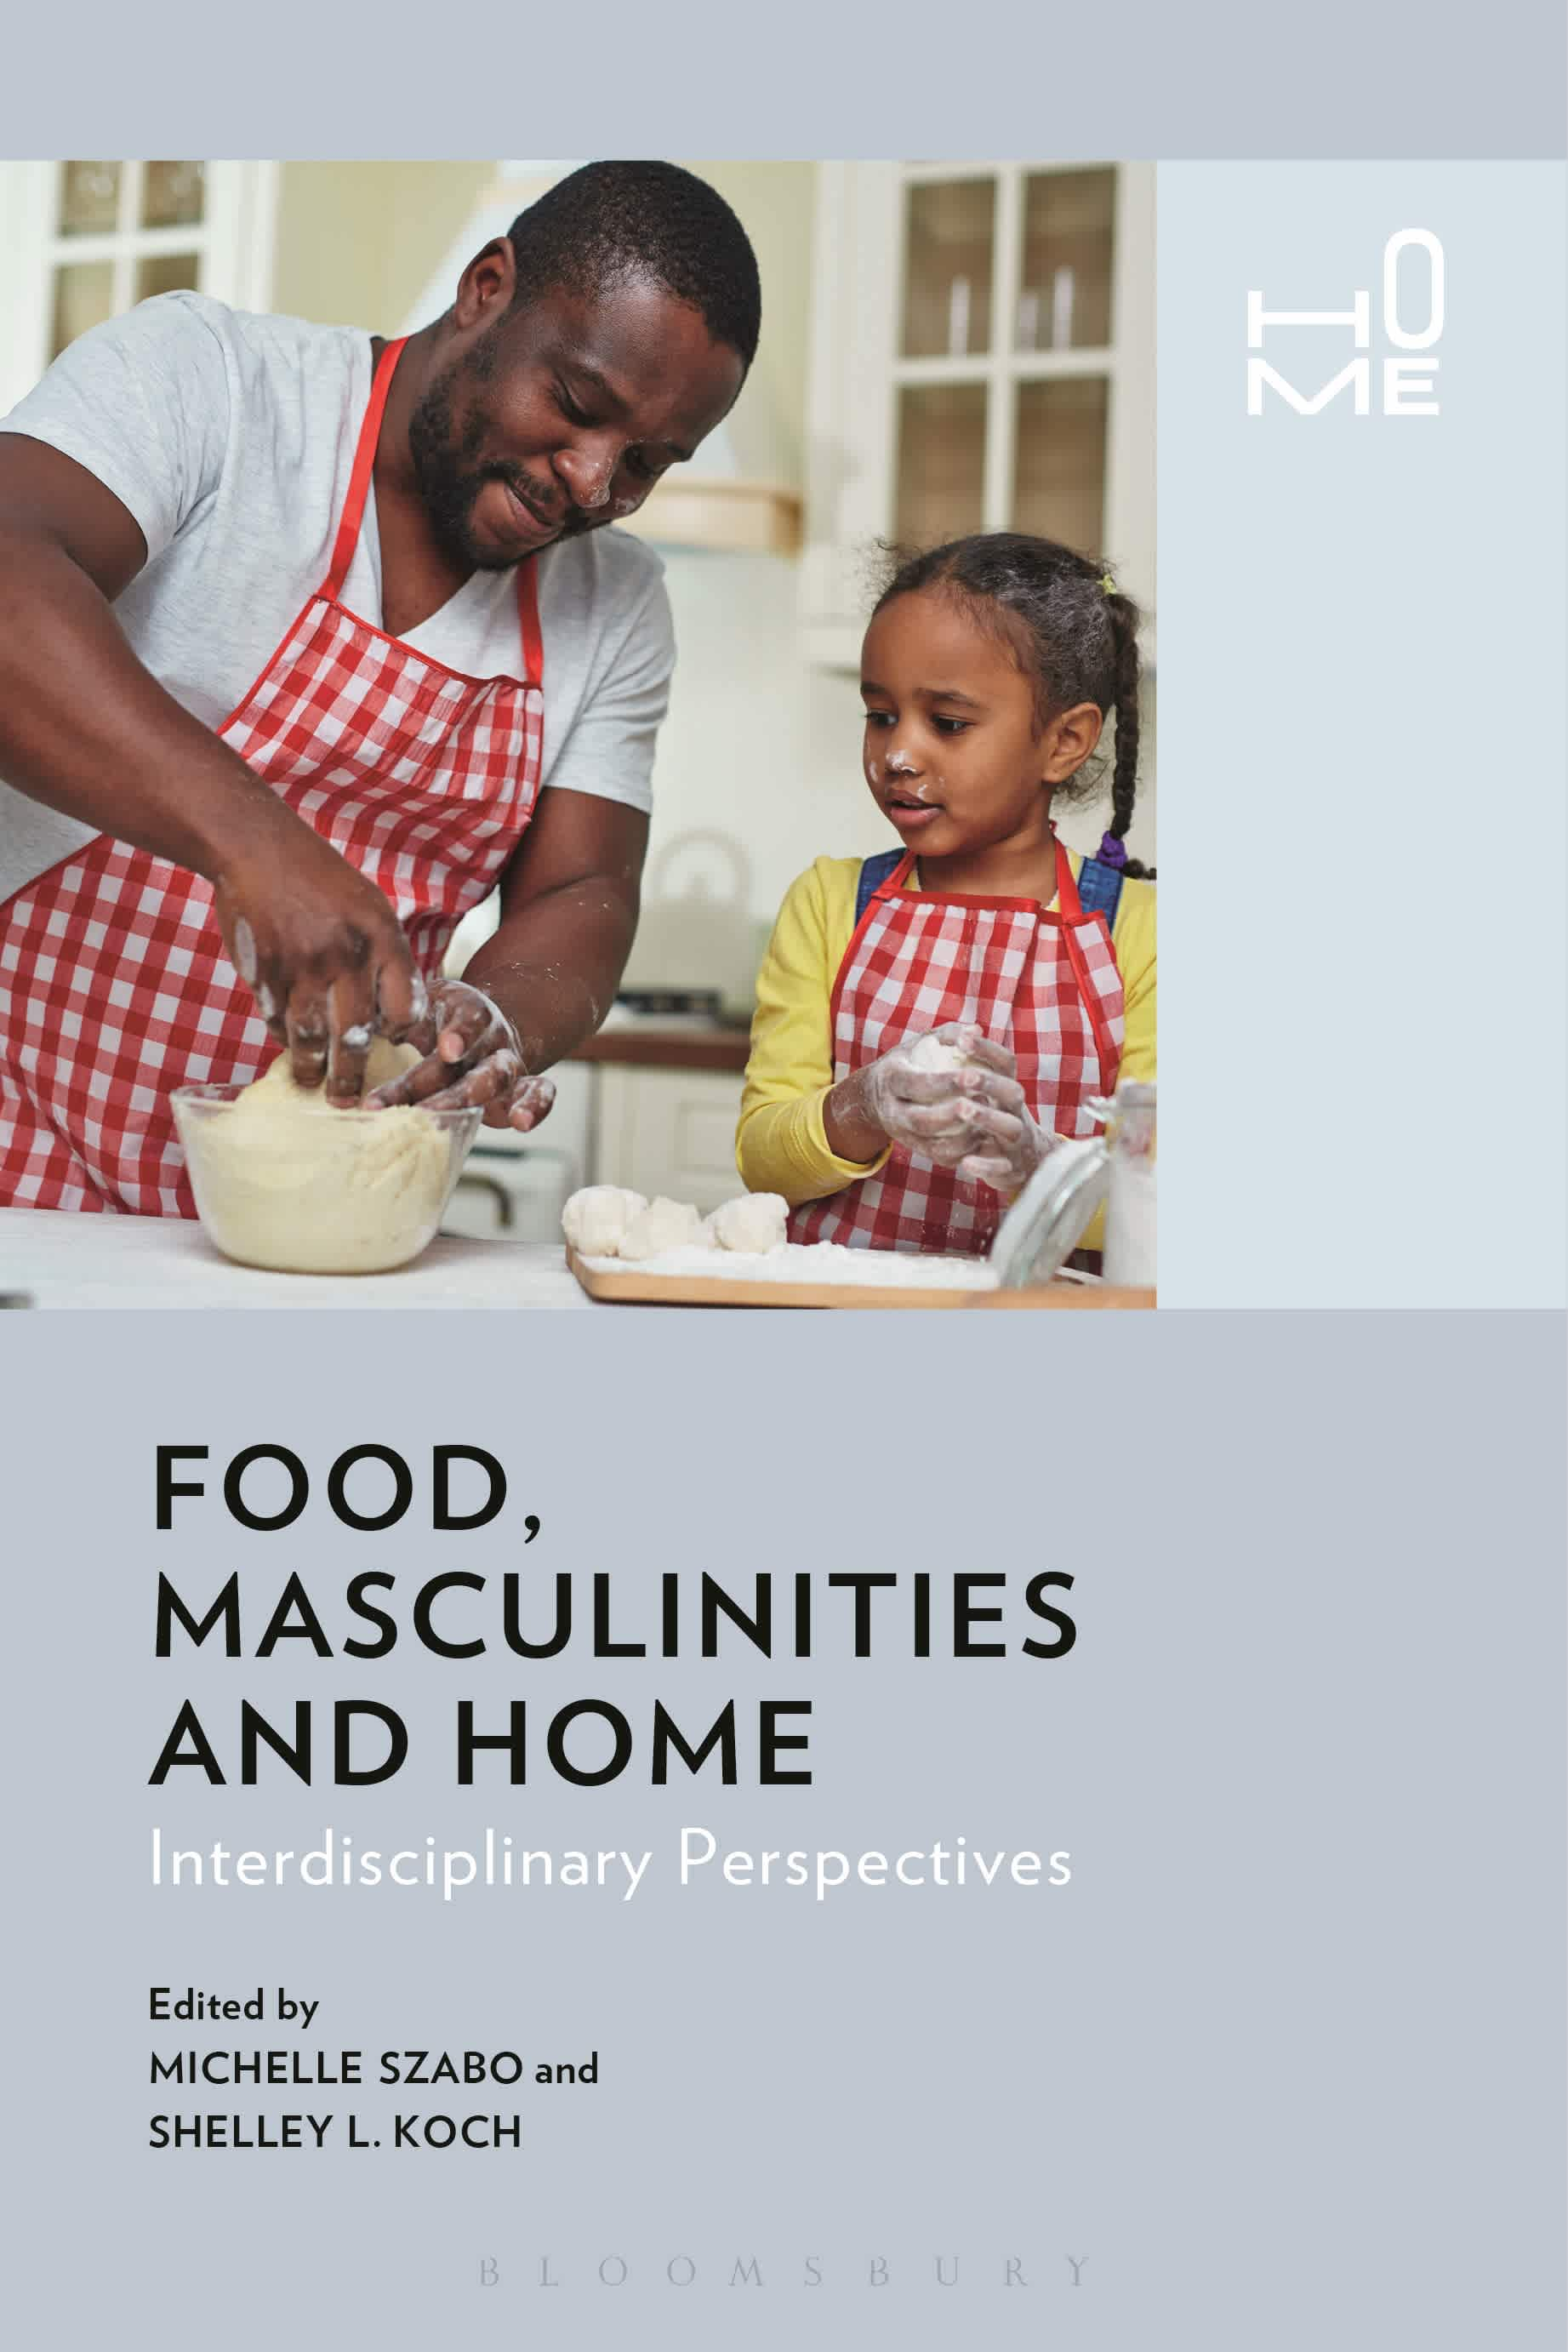 Food, Masculinities, and Home: Interdisciplinary Perspectives